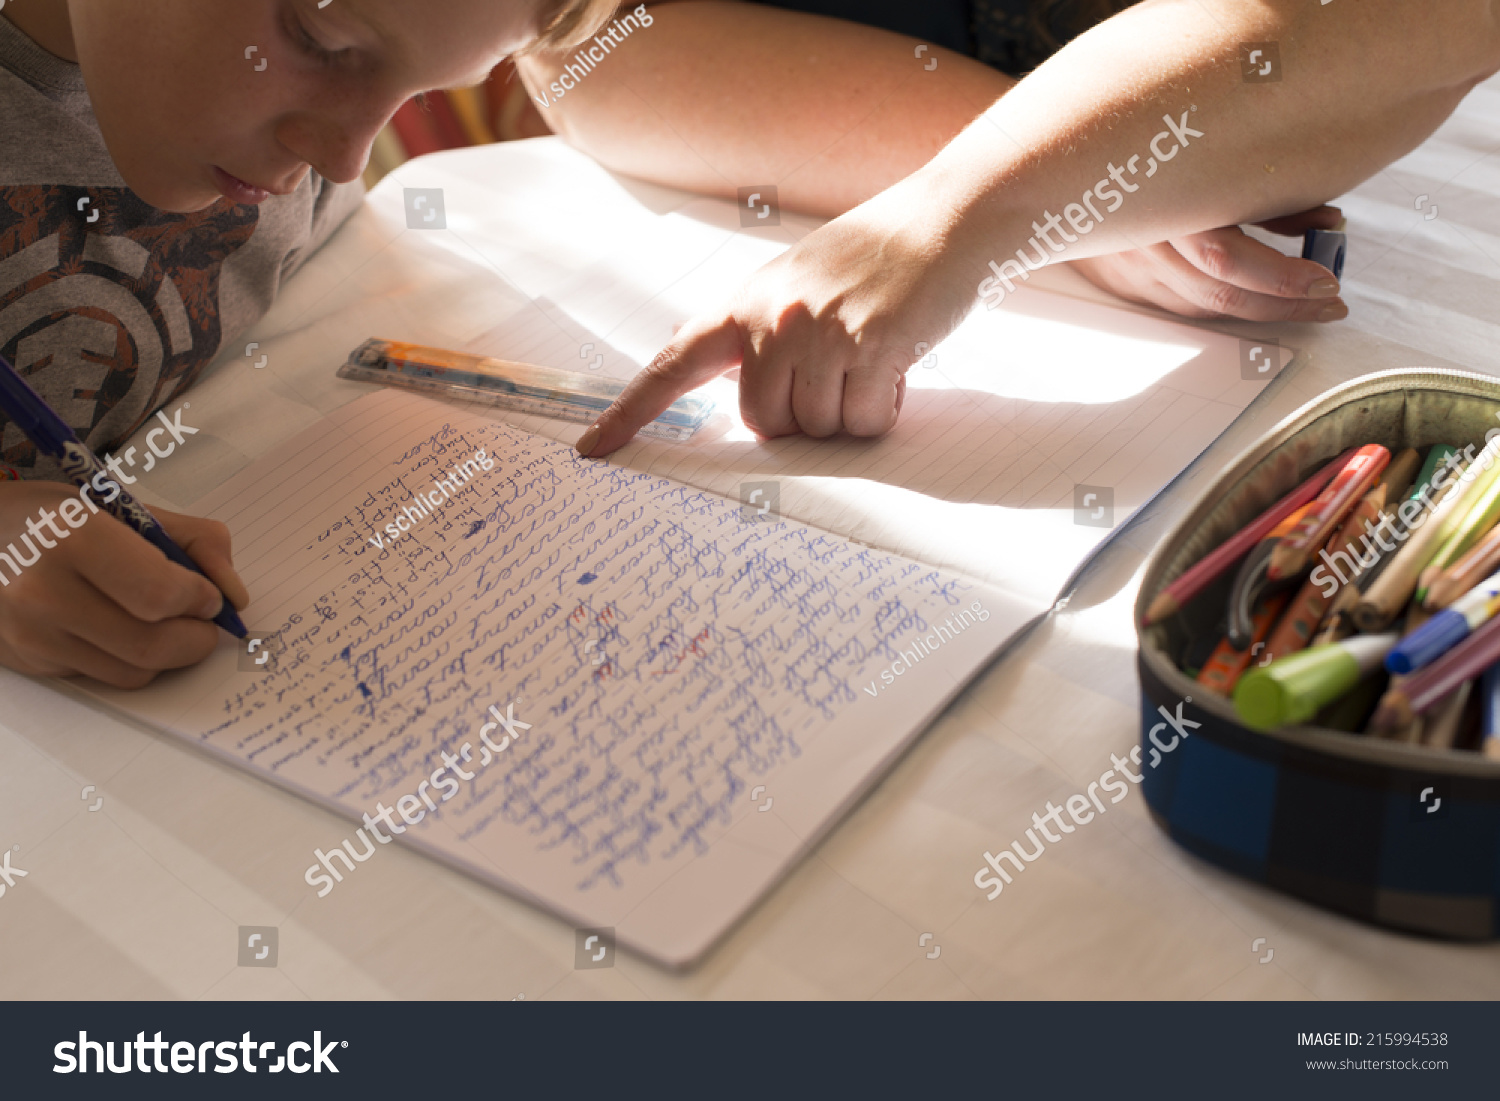 """online tutor essay writing """"how do i help my child with writing"""" the answer: writing tutoring learn how our writing tutors can build your child's skills and confidence."""